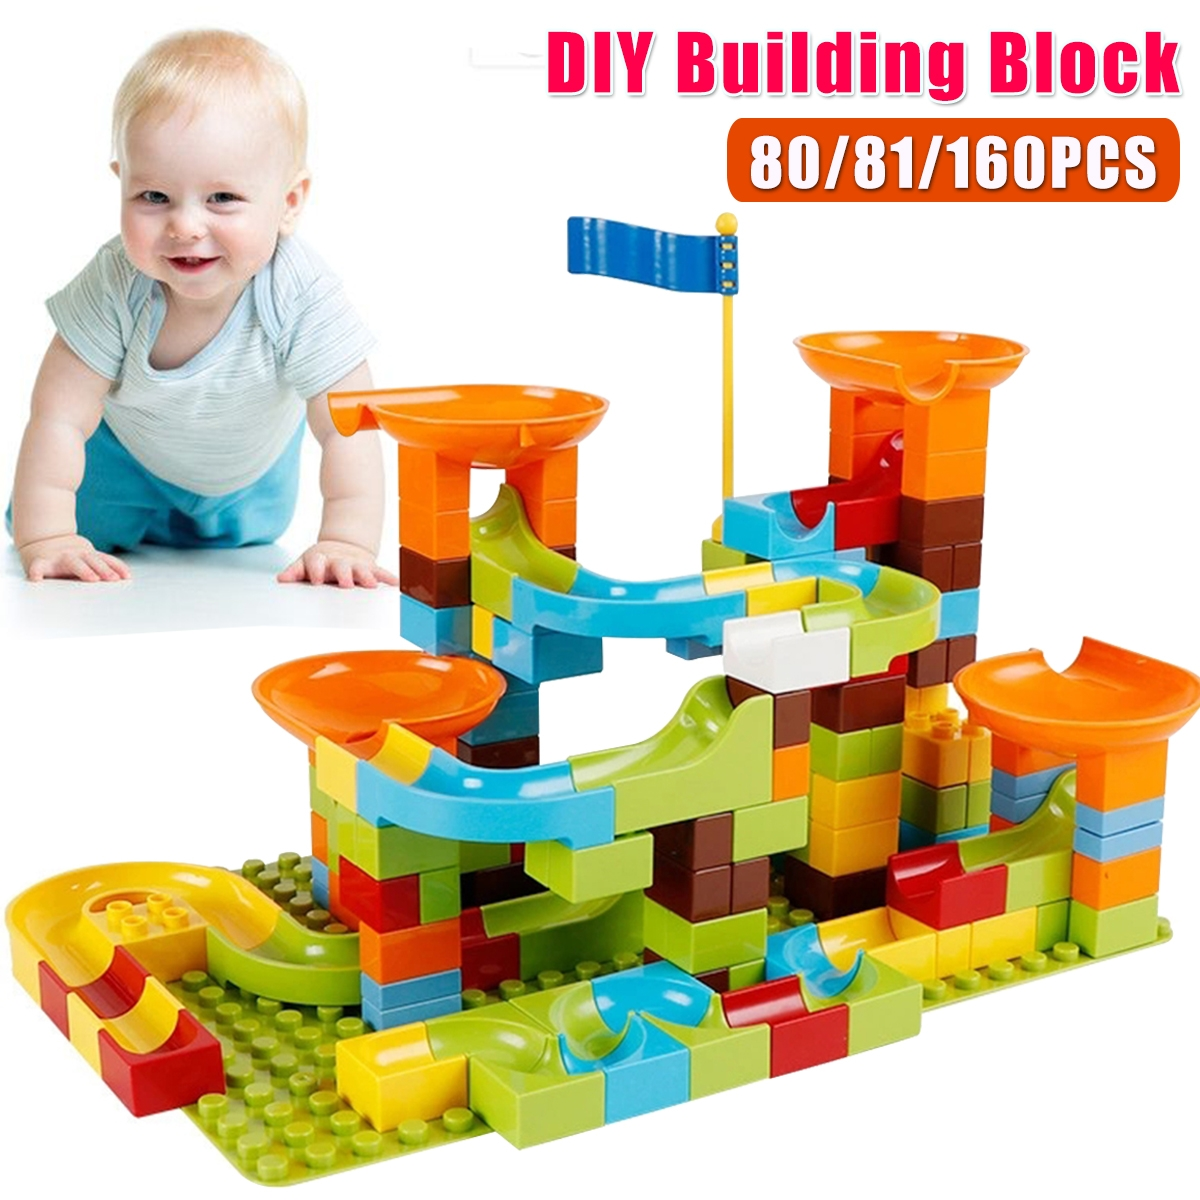 80/81/160Pcs DIY Assembly Kids Game Play Building Blocks Toys for Kids Gift